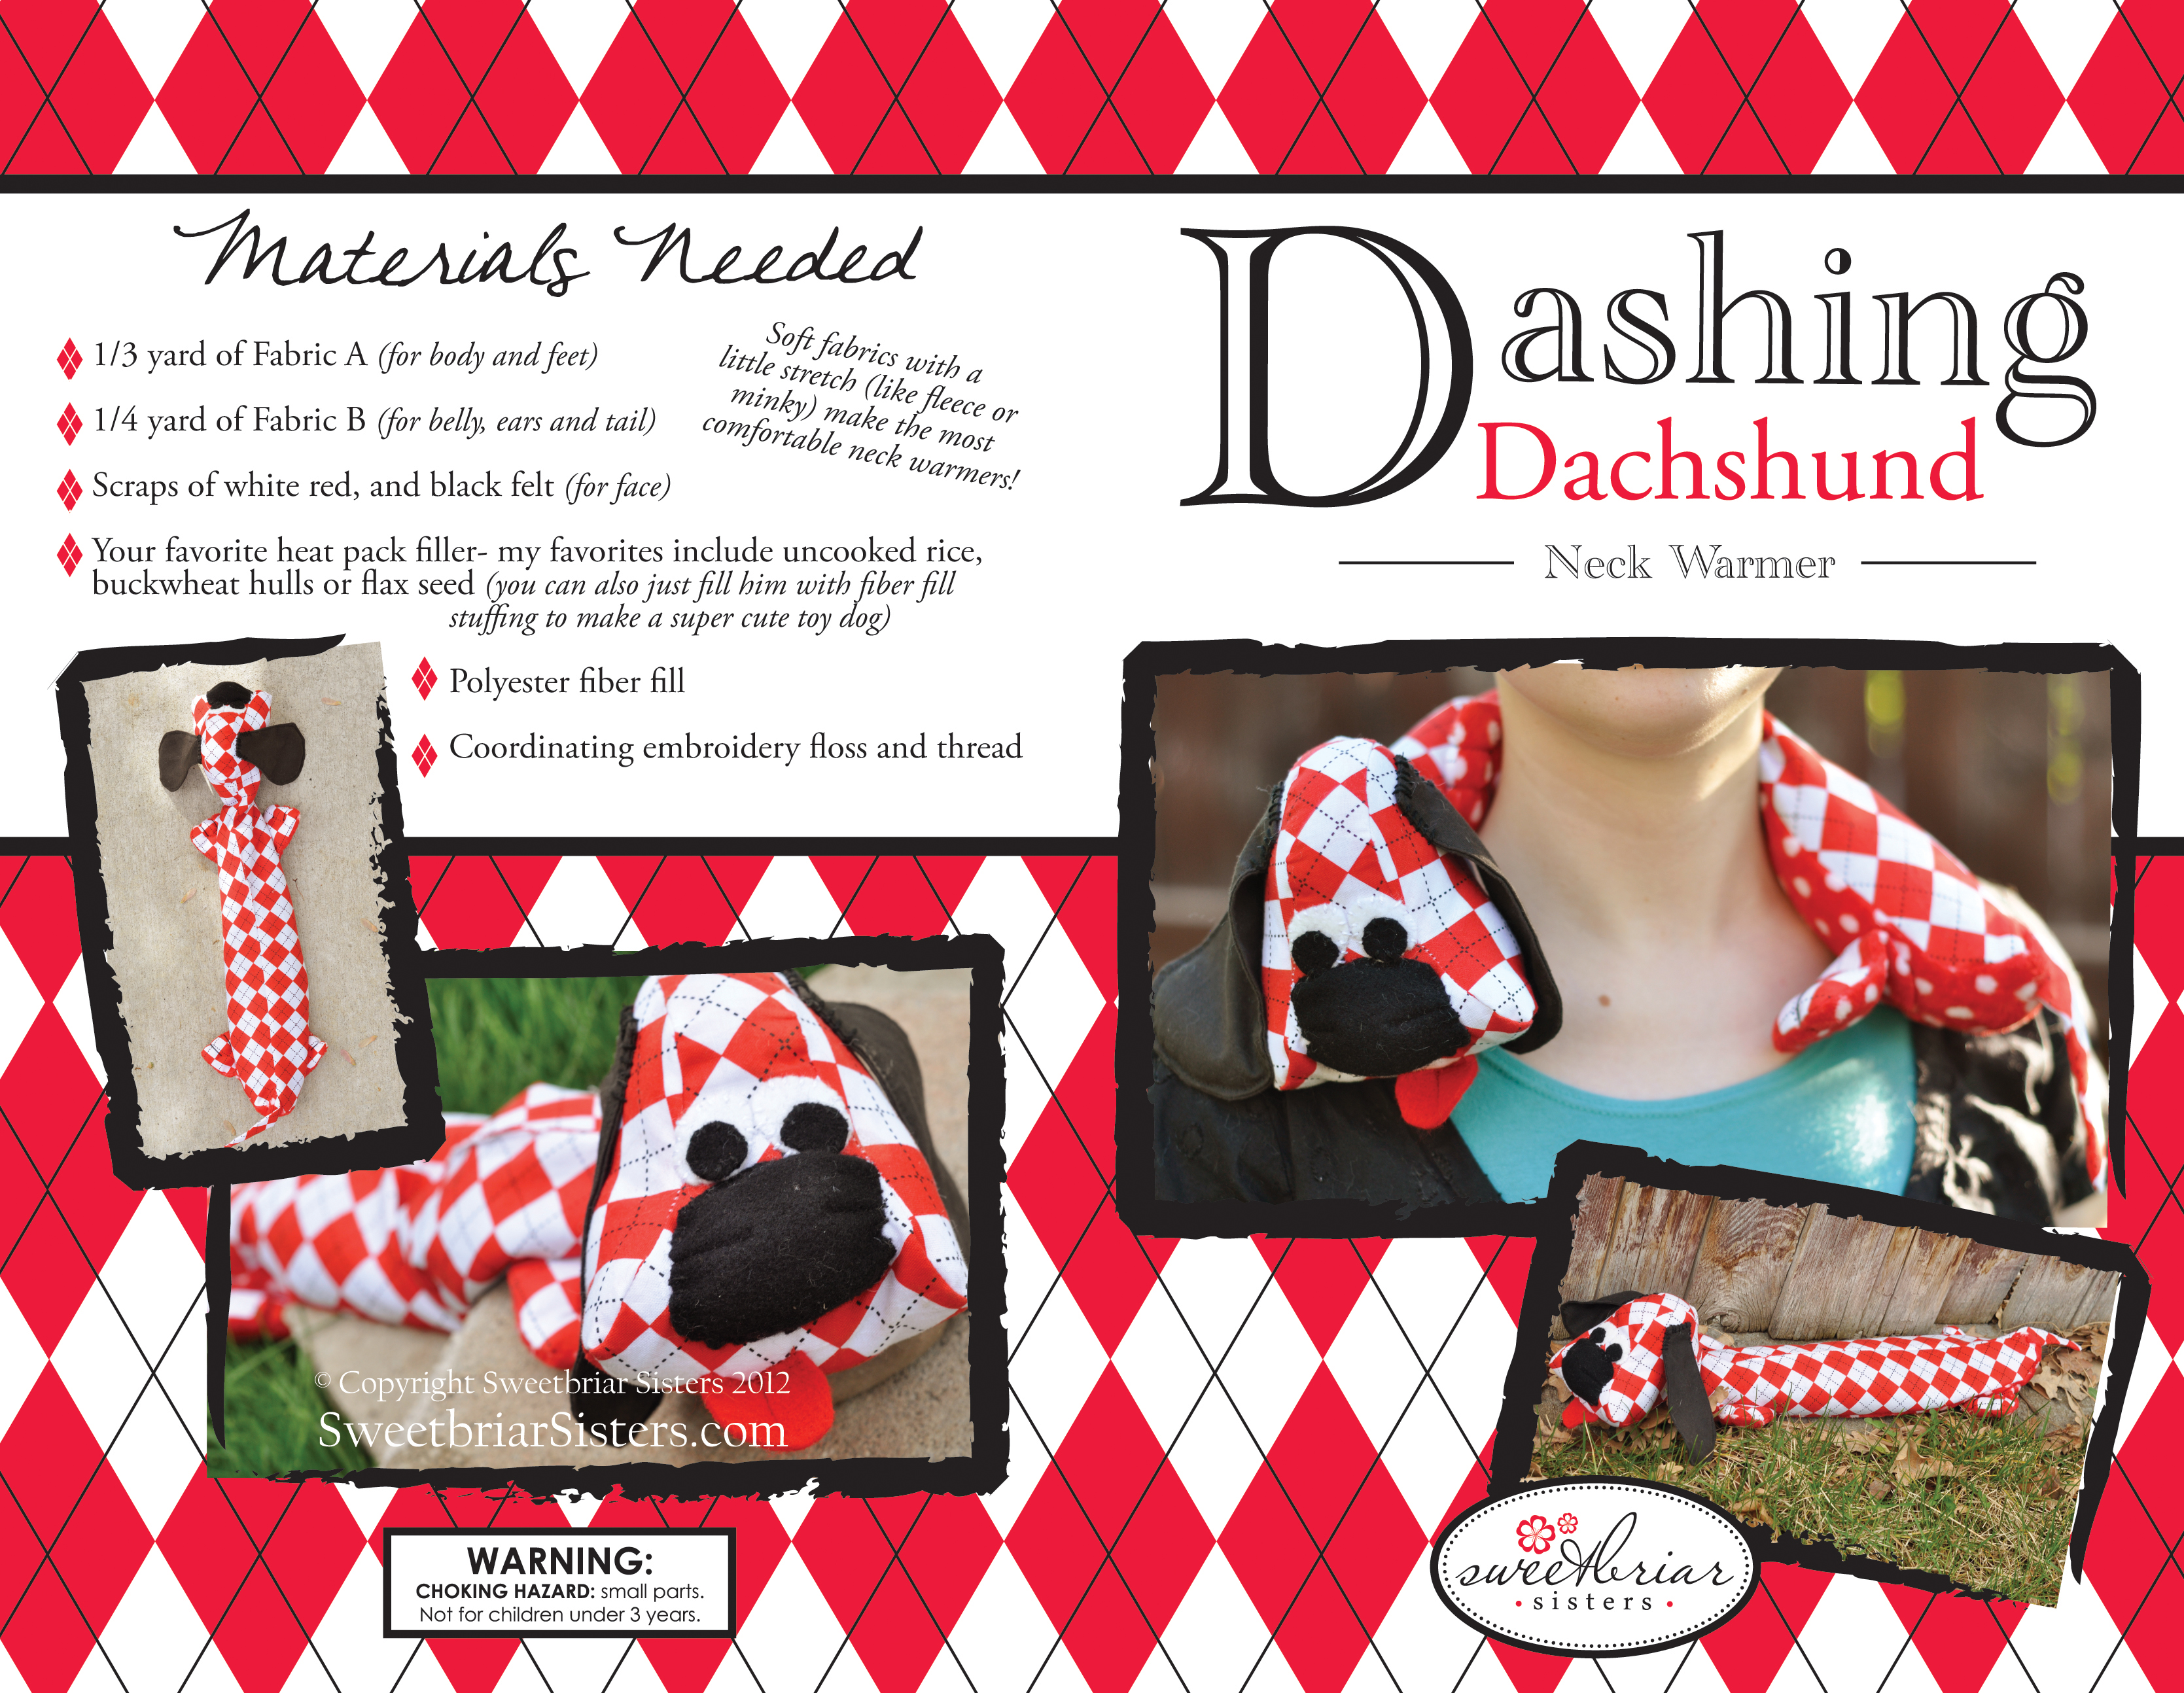 Dashing Dachshund Neckwarmer Sweetbriar Sisters